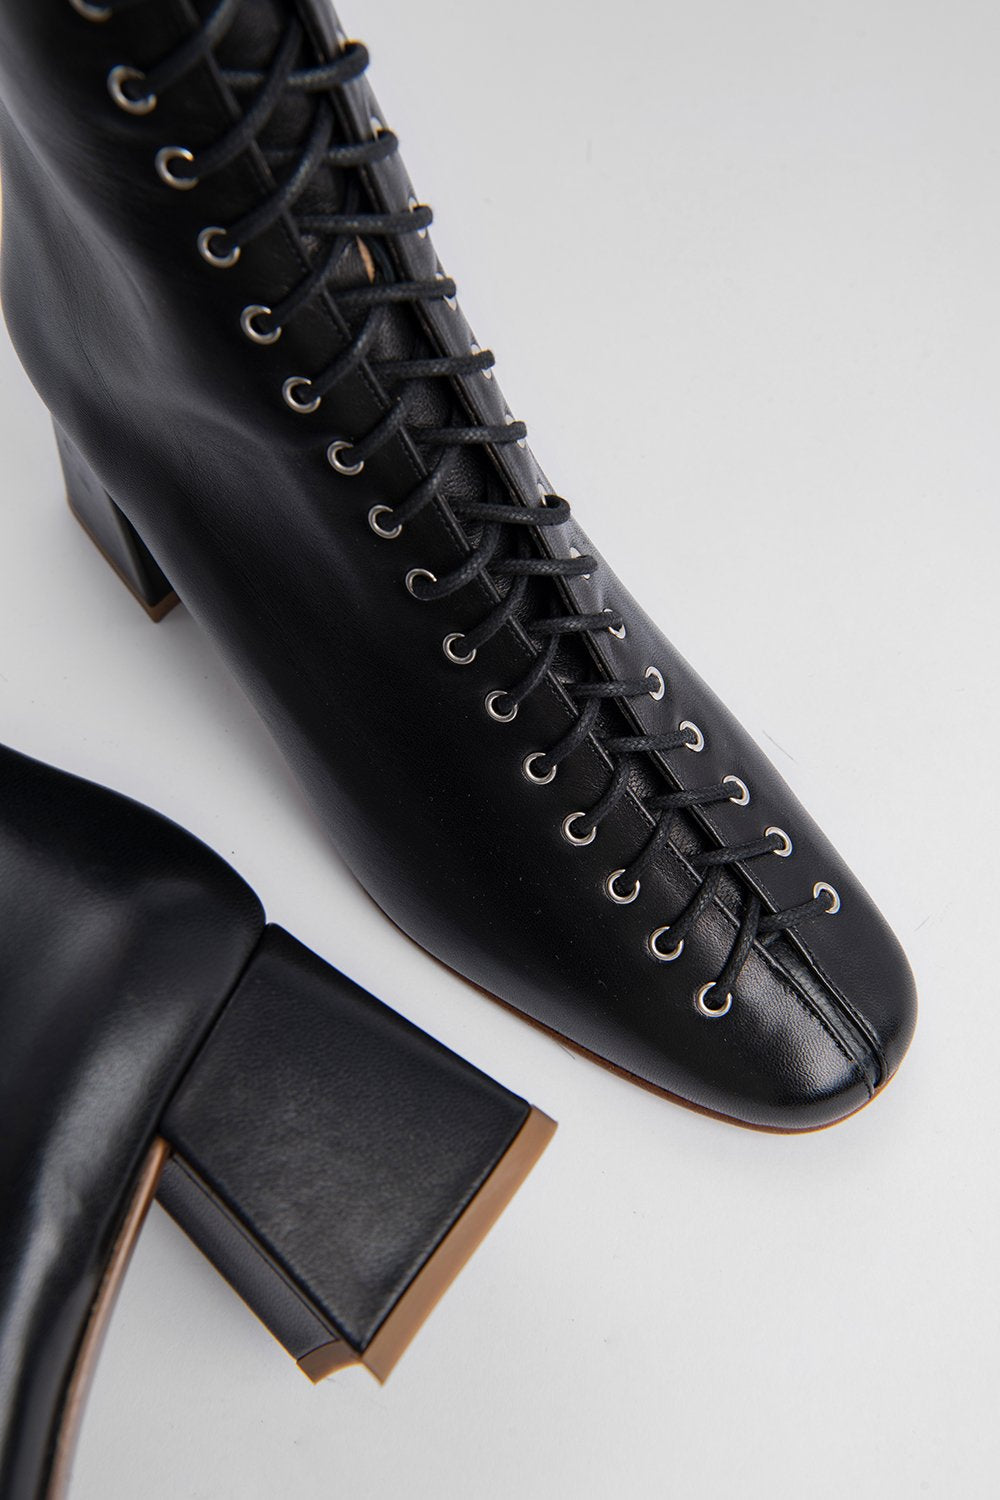 Becca Black Leather Boots